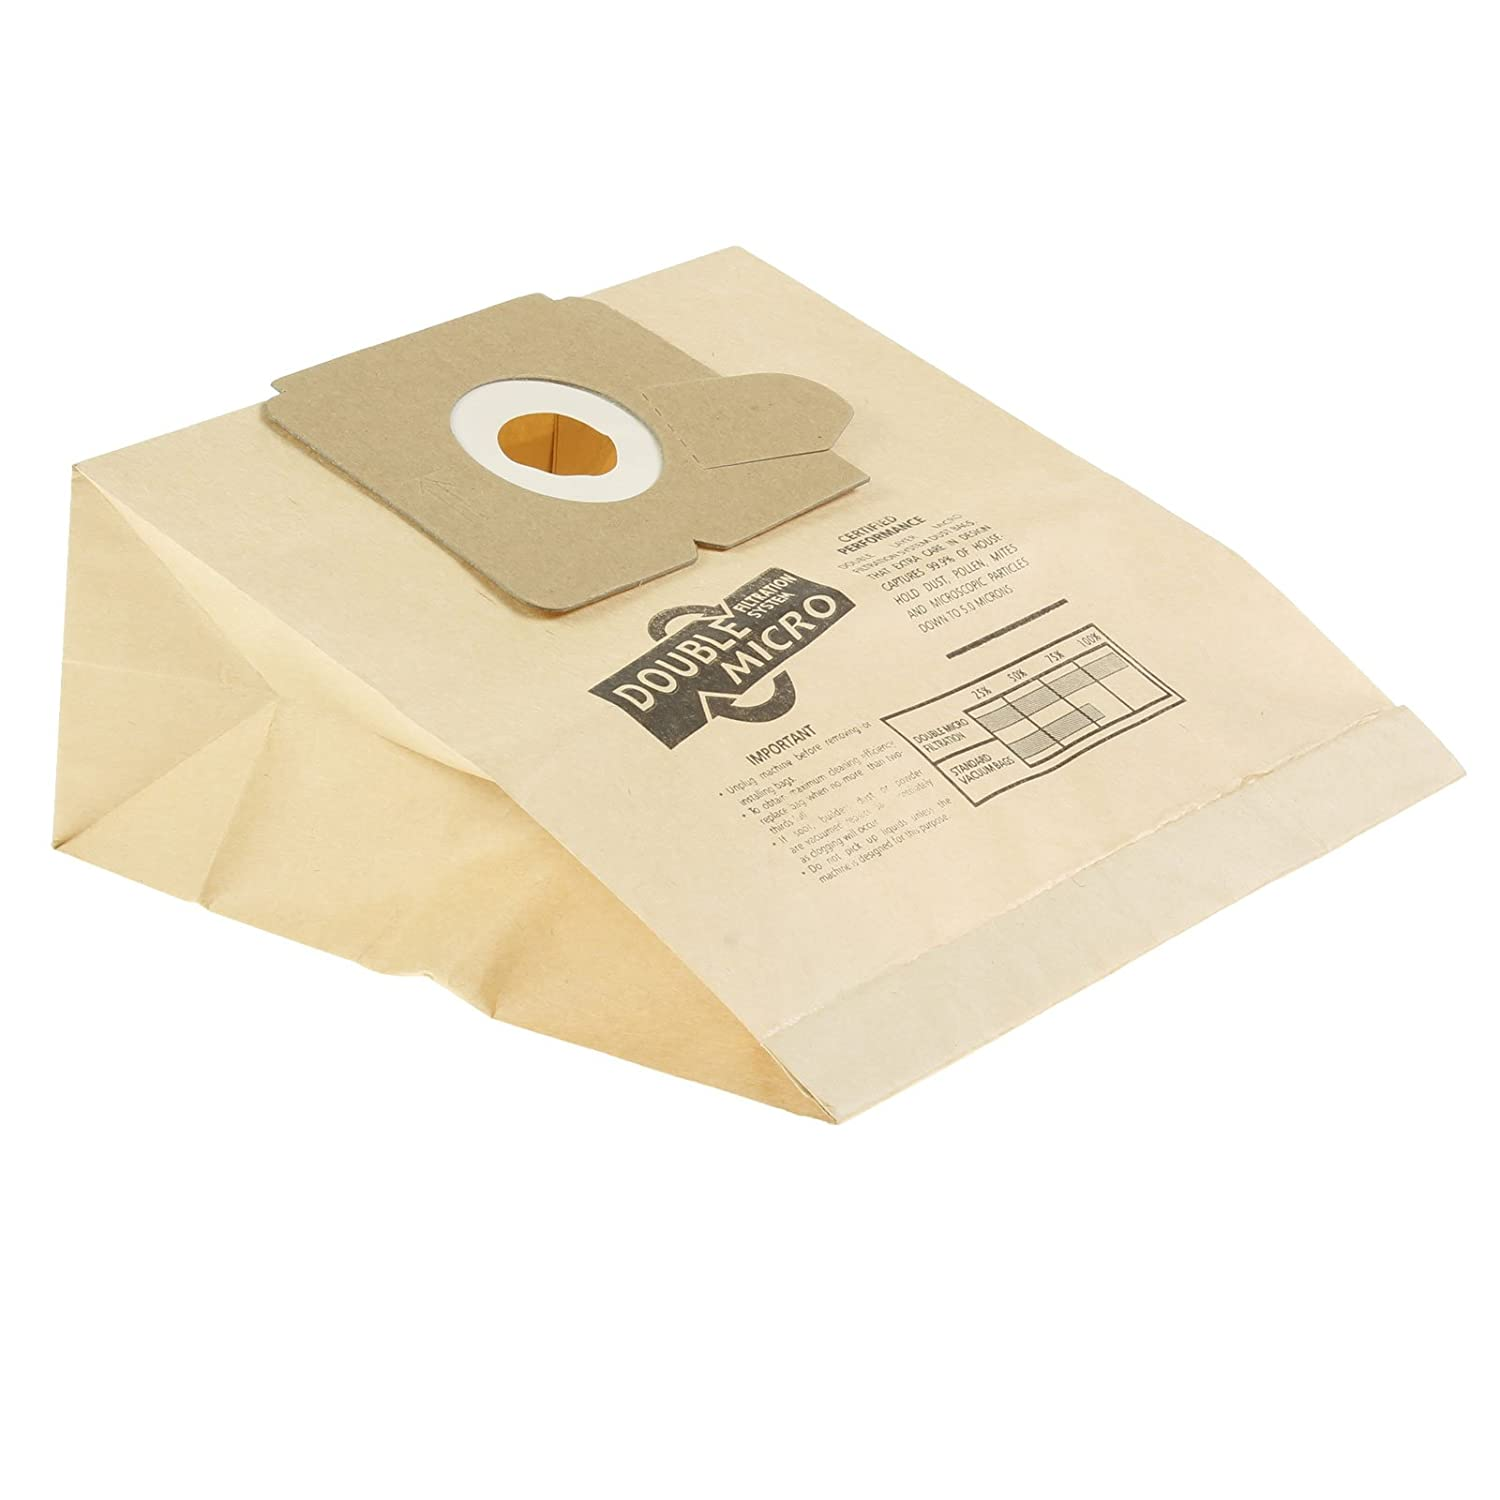 5 x E53 Dust Bags for Electrolux Z5305 Z5307 Z5310 Vacuum Cleaner